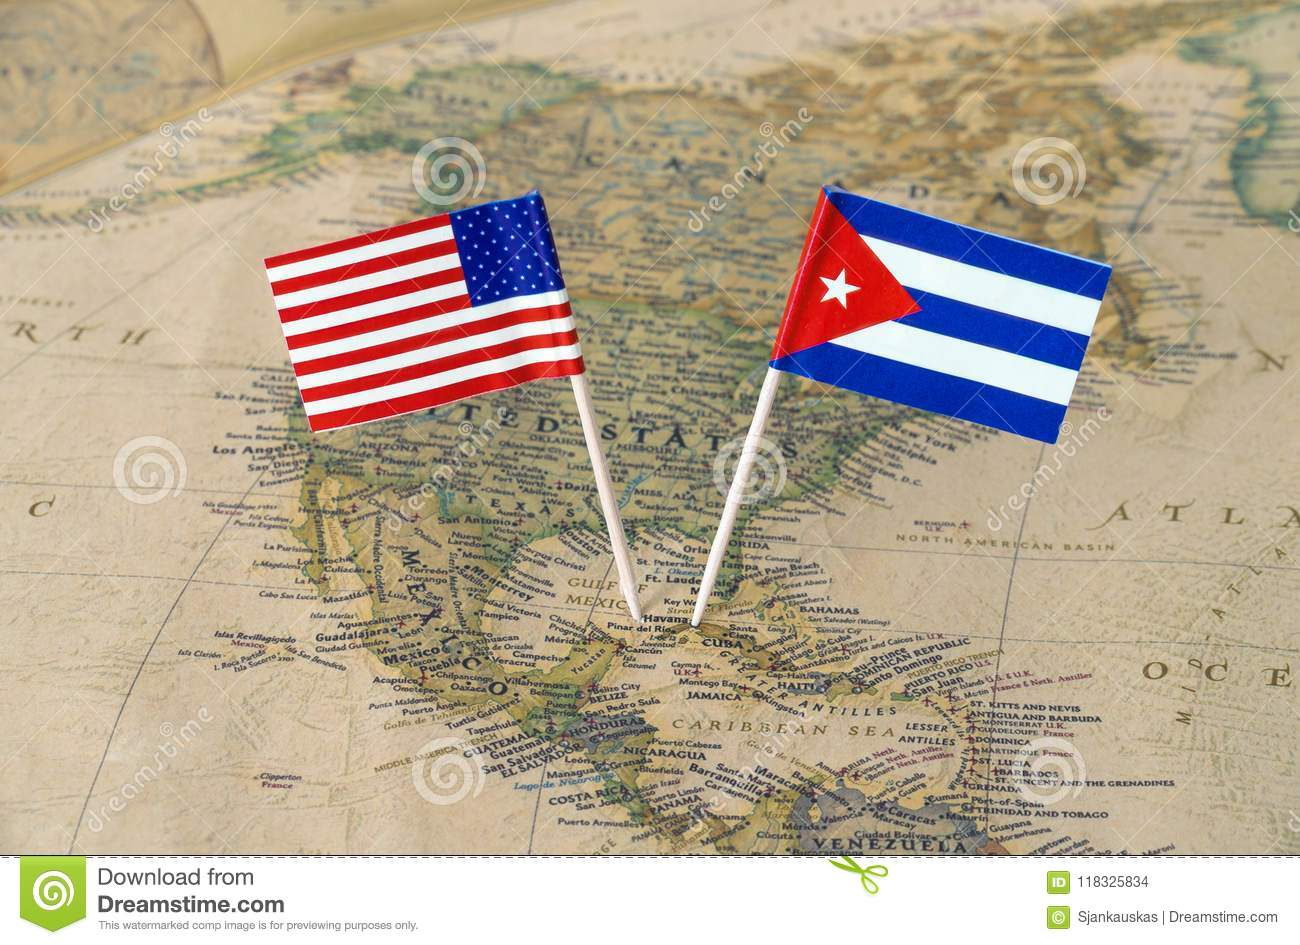 World Map Of United States Of America.The United States Of America And Cuba Flag Pins On A World Map